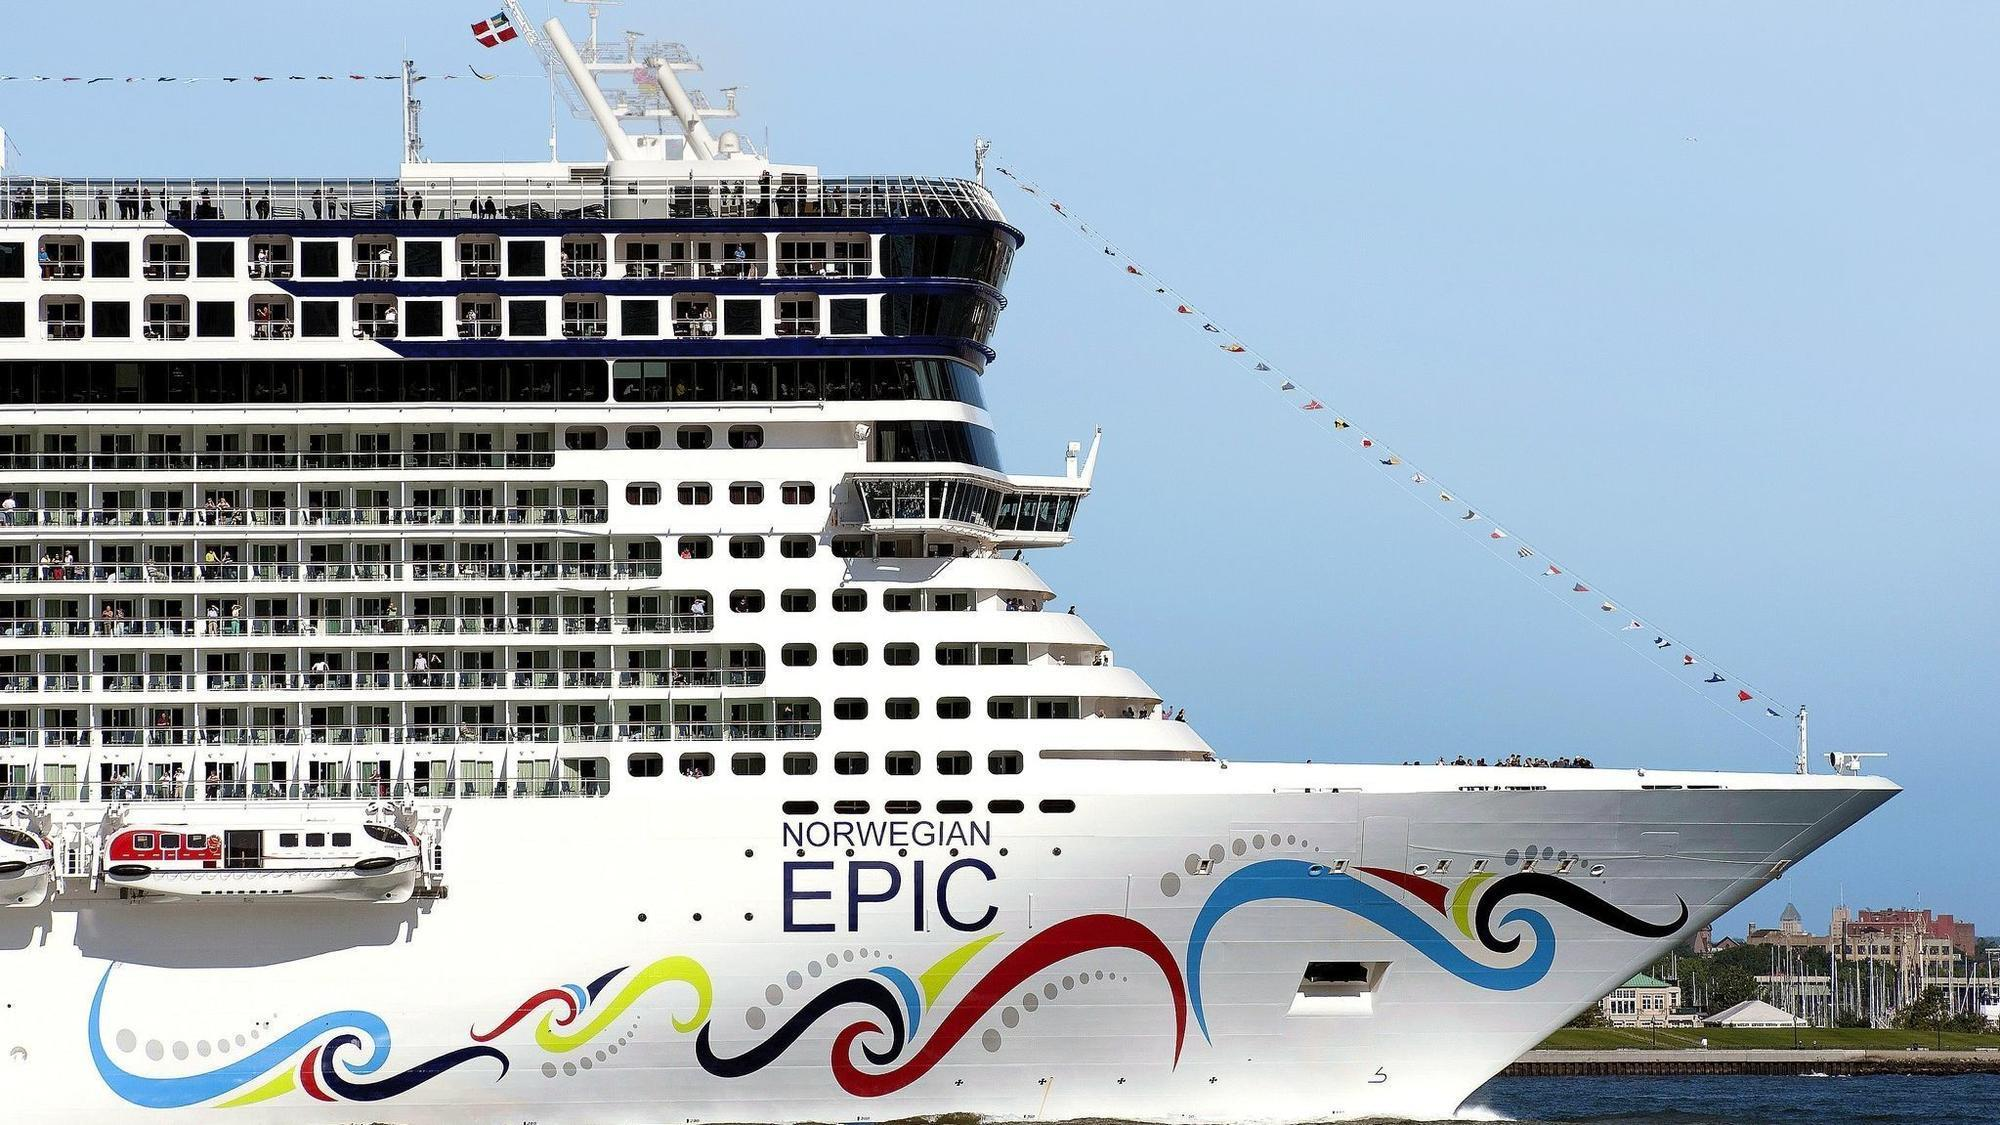 'It's Gonna Hit!' Video Shows Norwegian Epic Cruise Ship